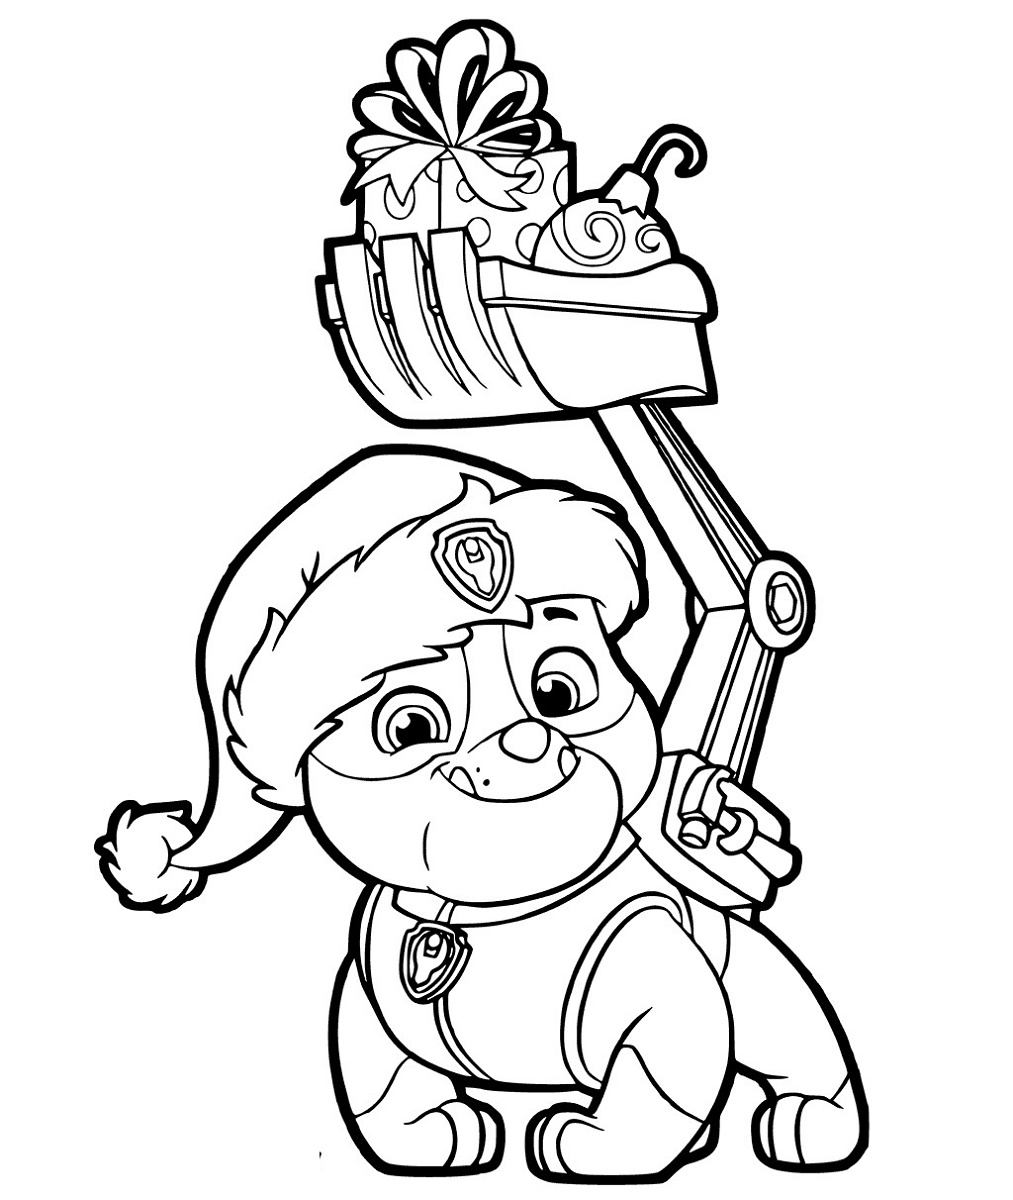 Paw Patrol Coloring To Print